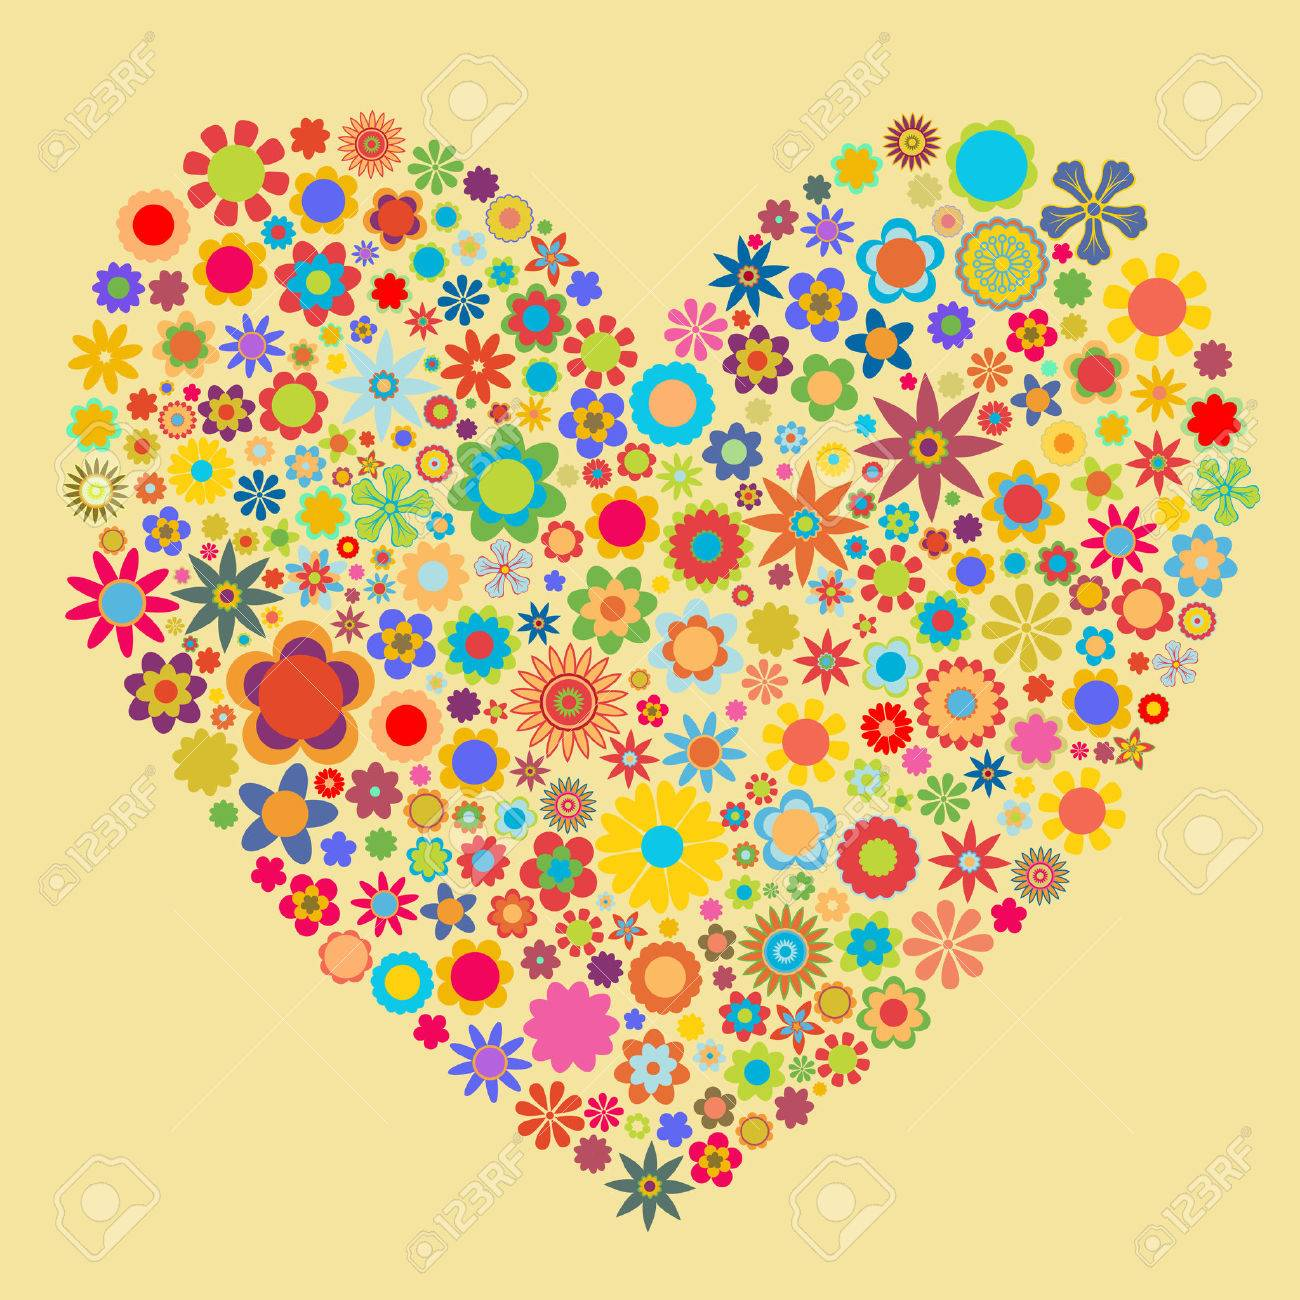 Vector illustration of heart  pattern made up of flower shapes. Good  for Valentine Cards. Stock Vector - 4874282